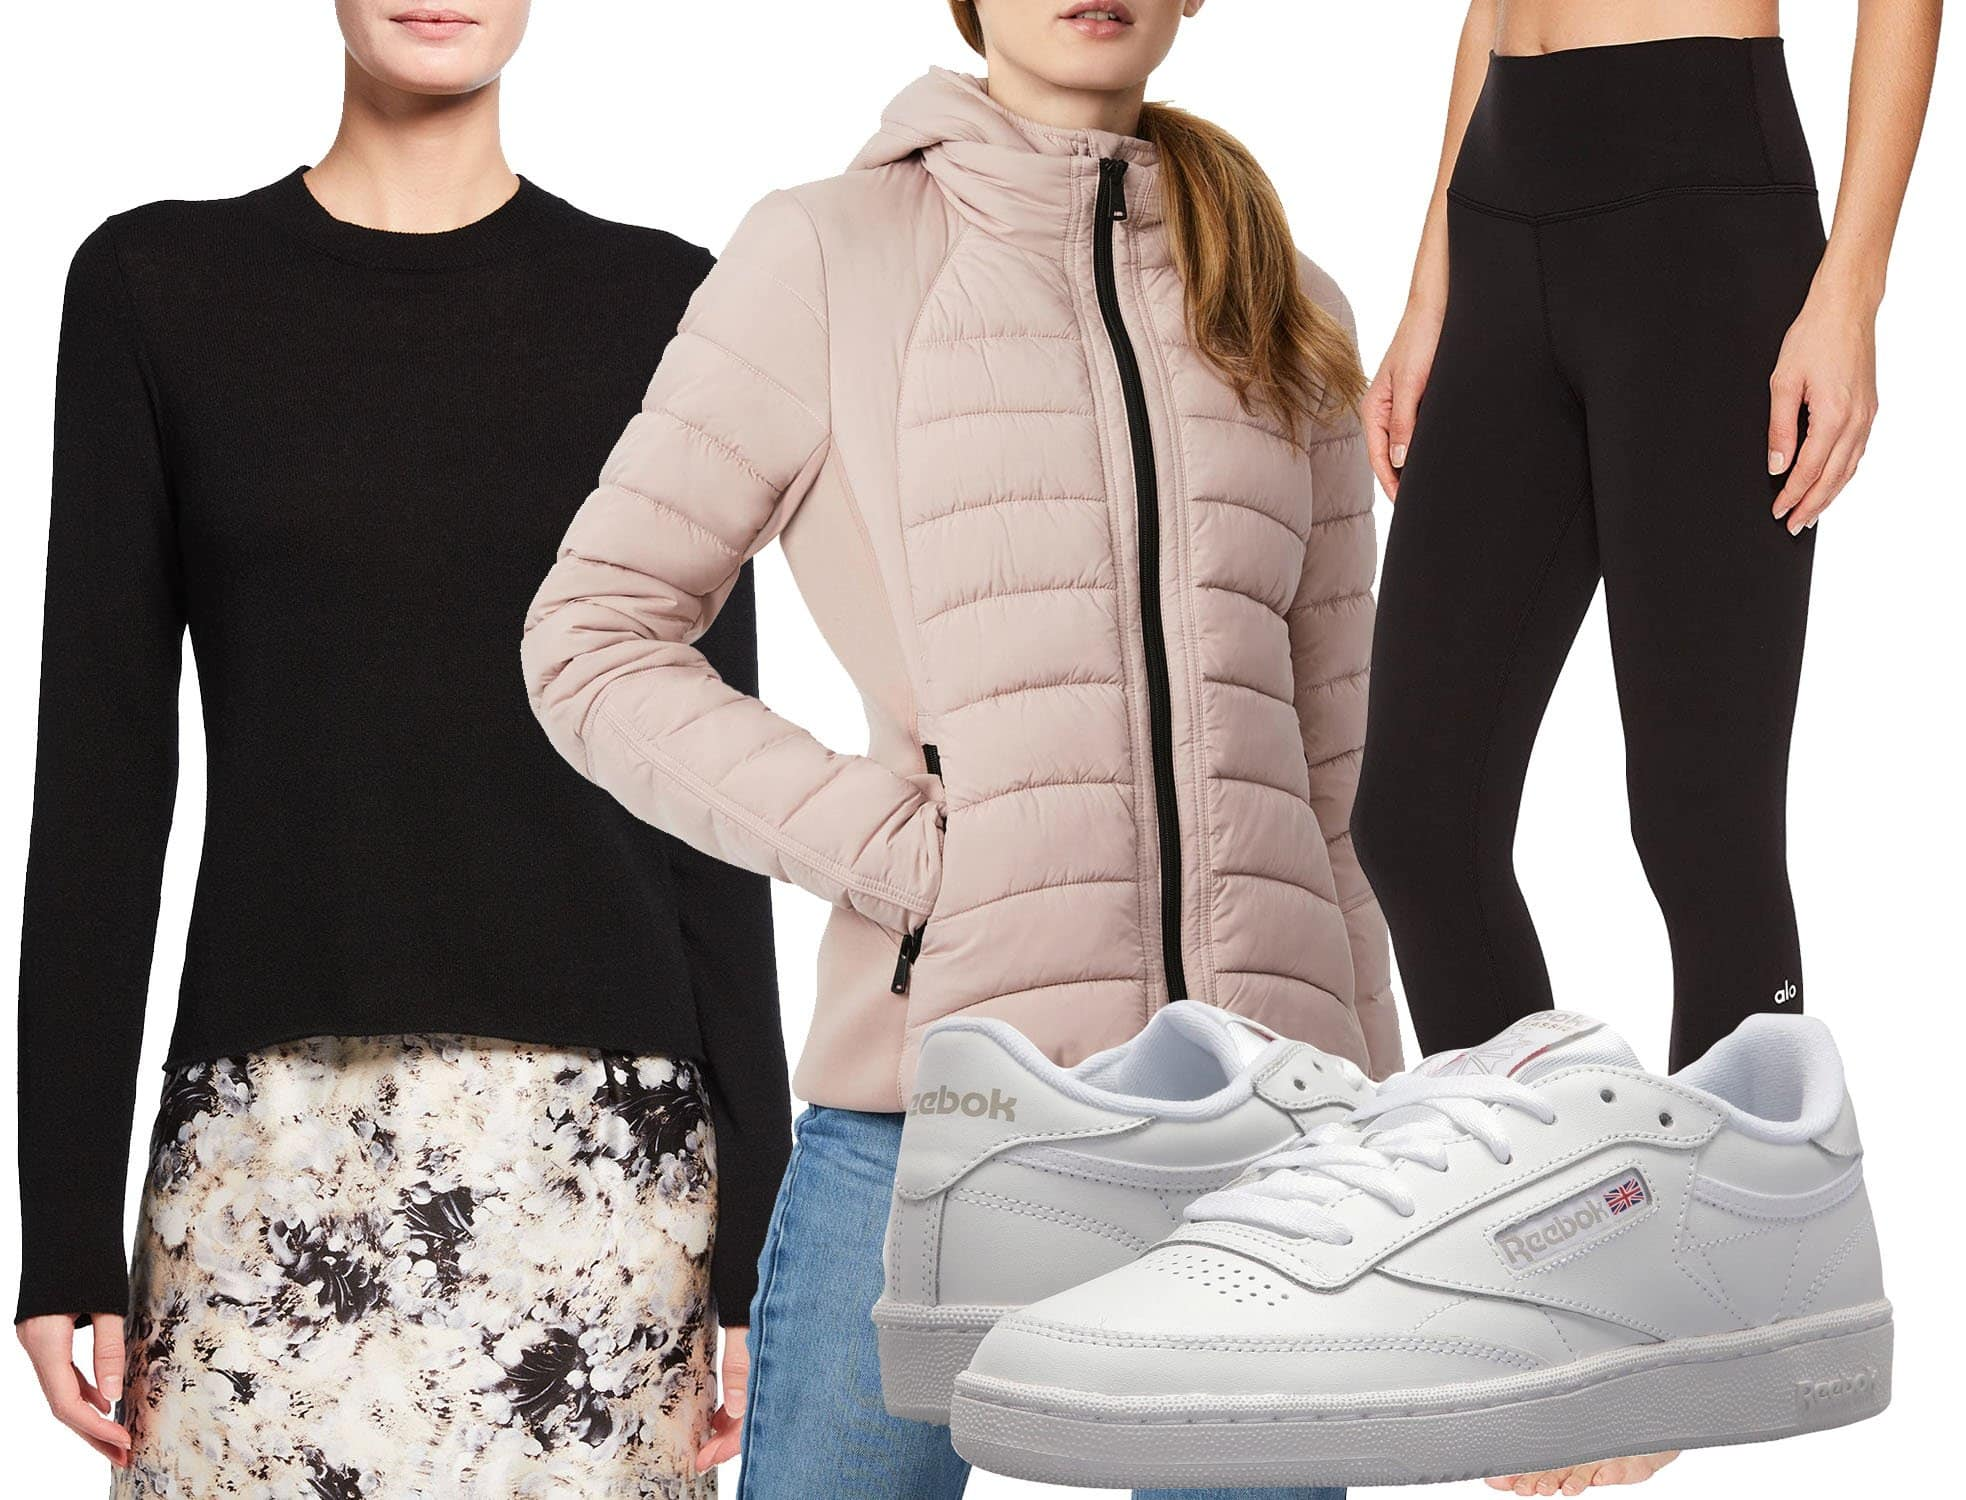 Vince Cashmere Slim Fit Crewneck Sweater, Bernardo Hooded Quilted Water Repellent Jacket, Alo 7/8 High-Waist Airbrush Leggings, Reebok Lifestyle Club C 85 Sneakers